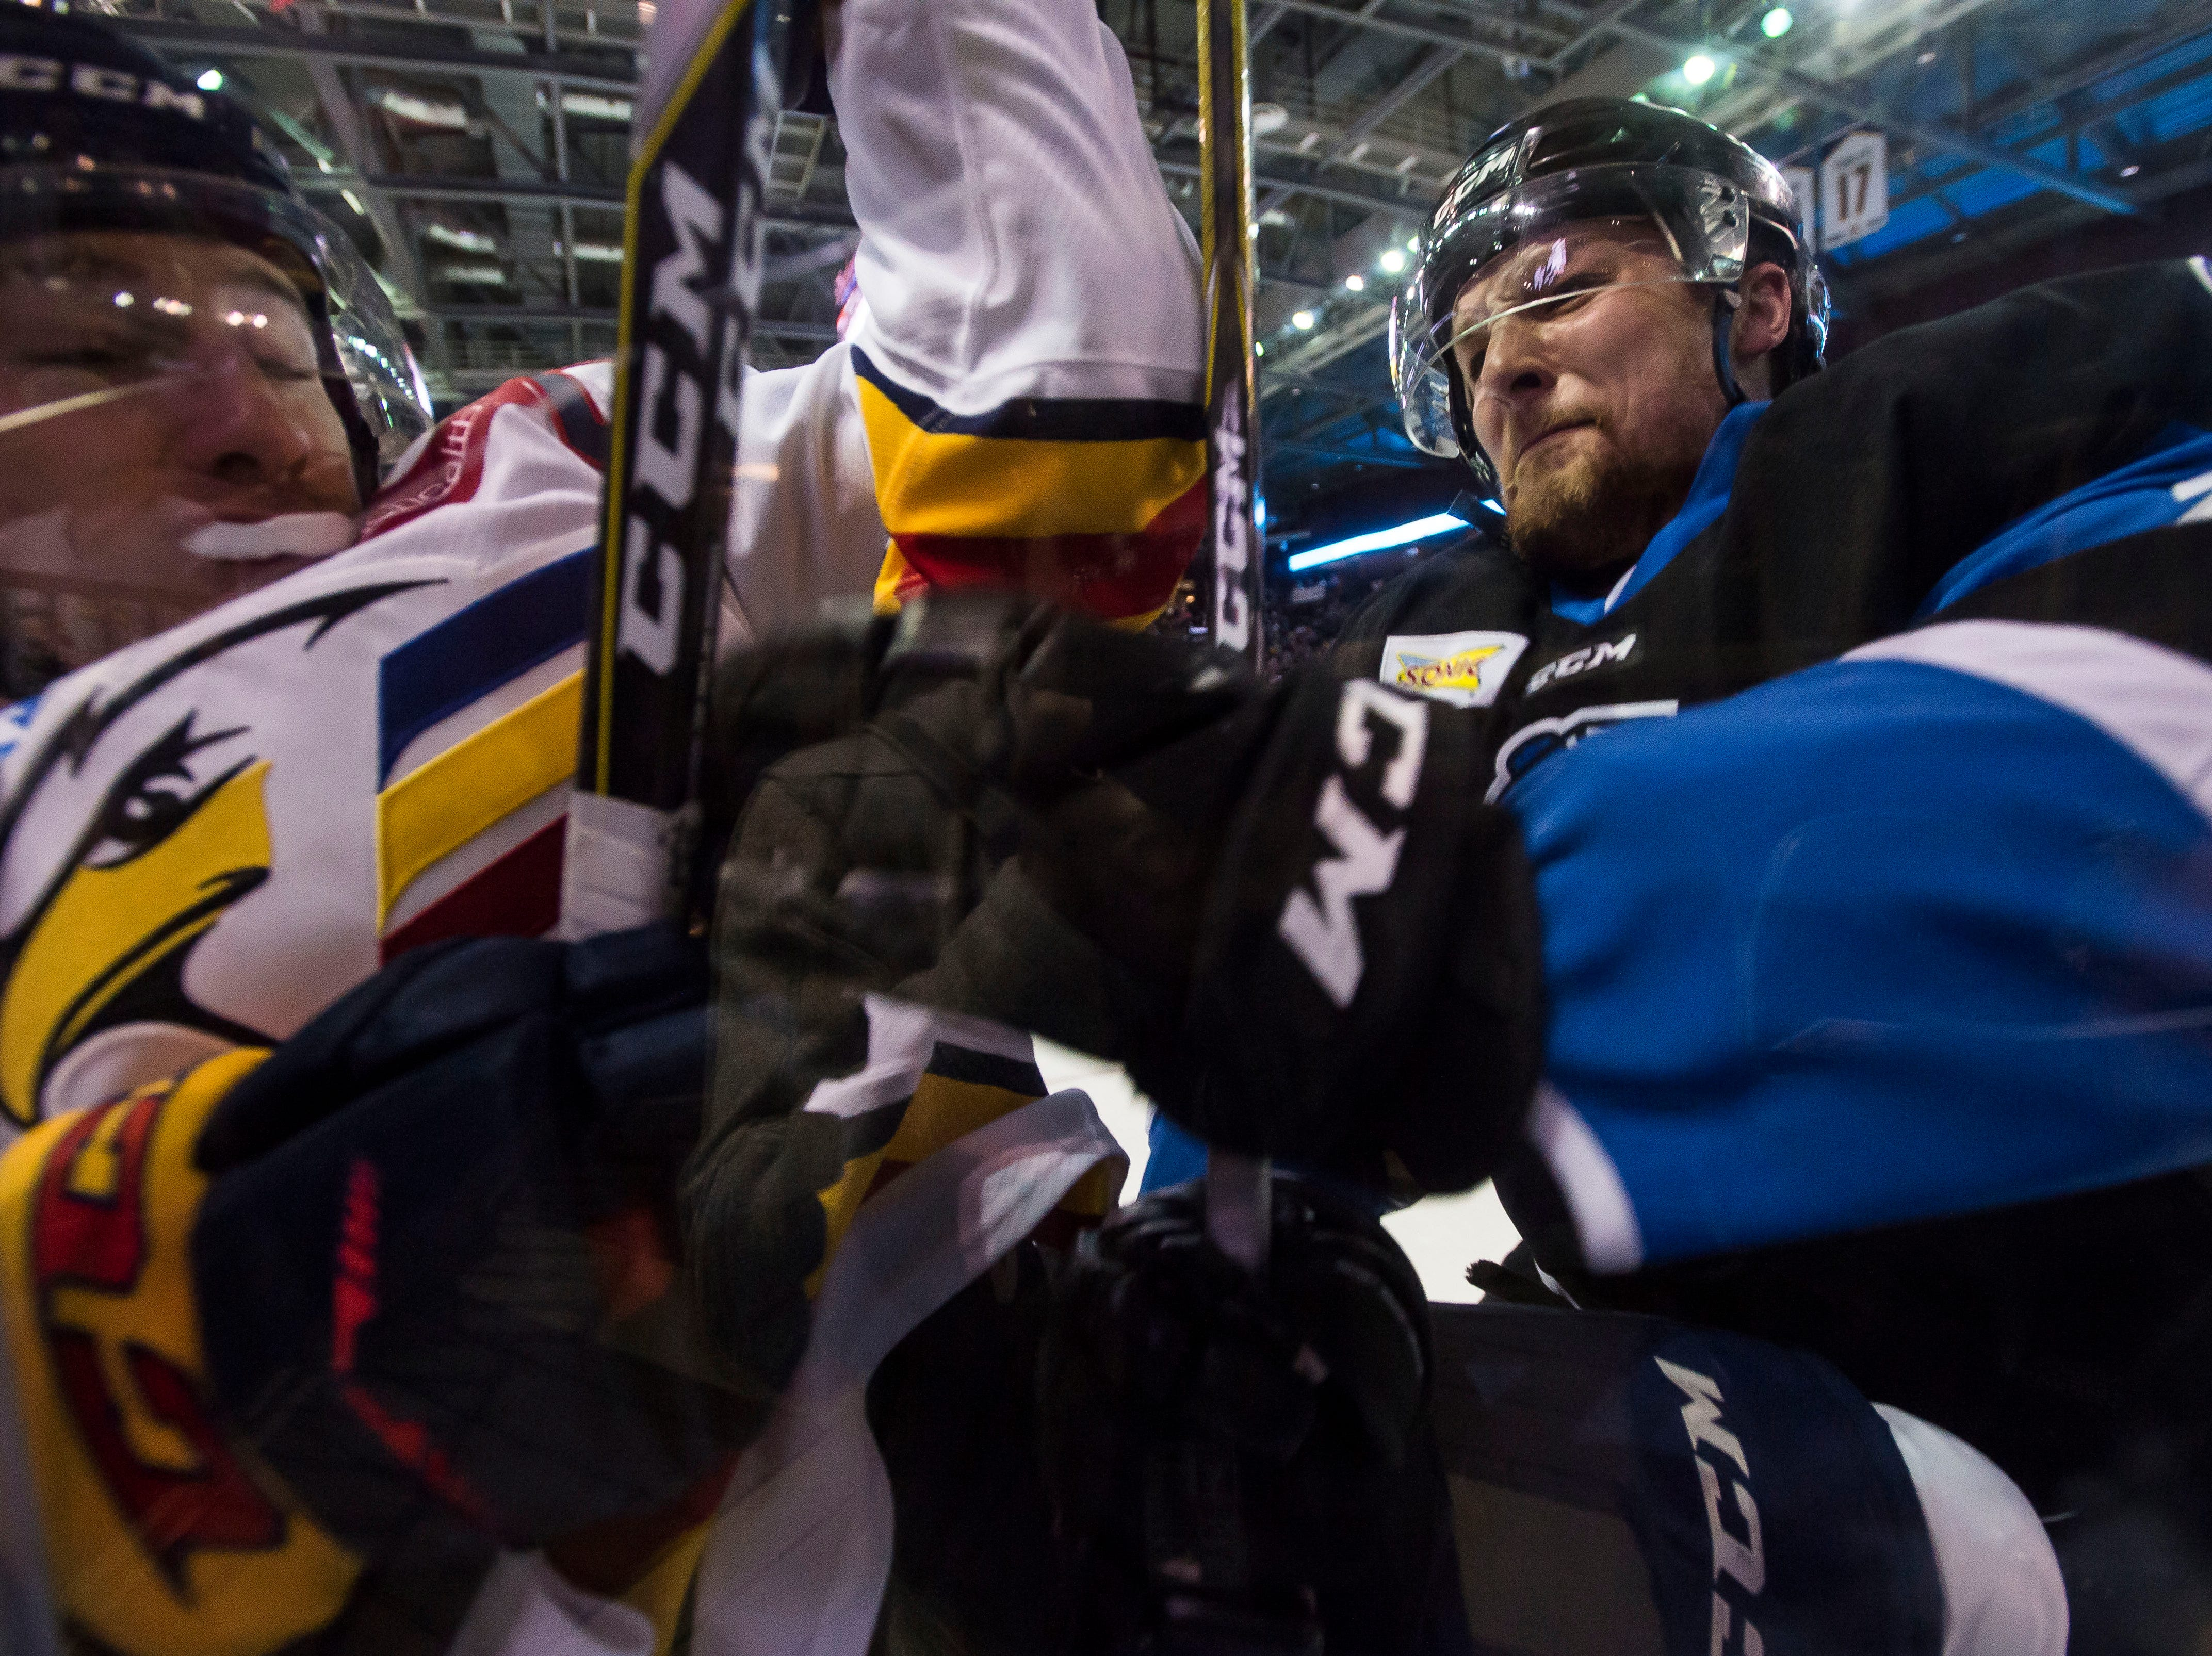 Colorado Eagles forward Matt Garbowsky (7) is checked by Wichita Thunder forward Mitch Maloney (23) on Wednesday, April 18, 2018, at the Budweiser Event Center in Loveland, Colo.